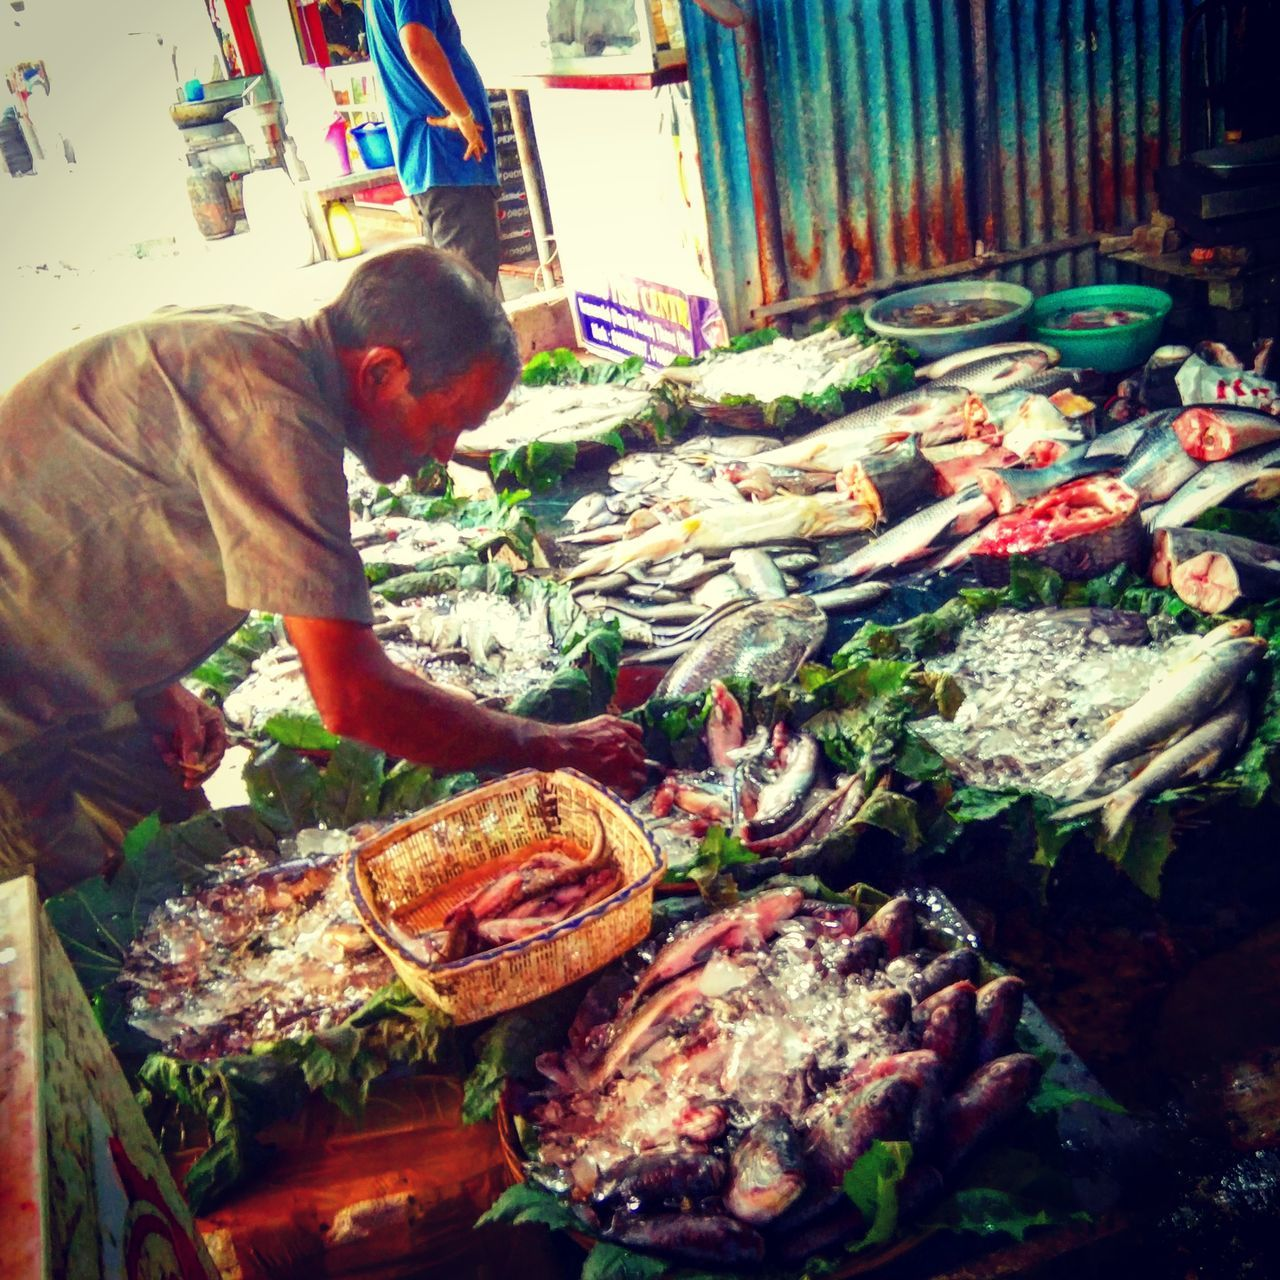 Eat Fish, Eat healthy! Food Food And Drink Selling Market Men Street Market Market Stall Real People Occupation Working Cultures One Person Fish Seafoods